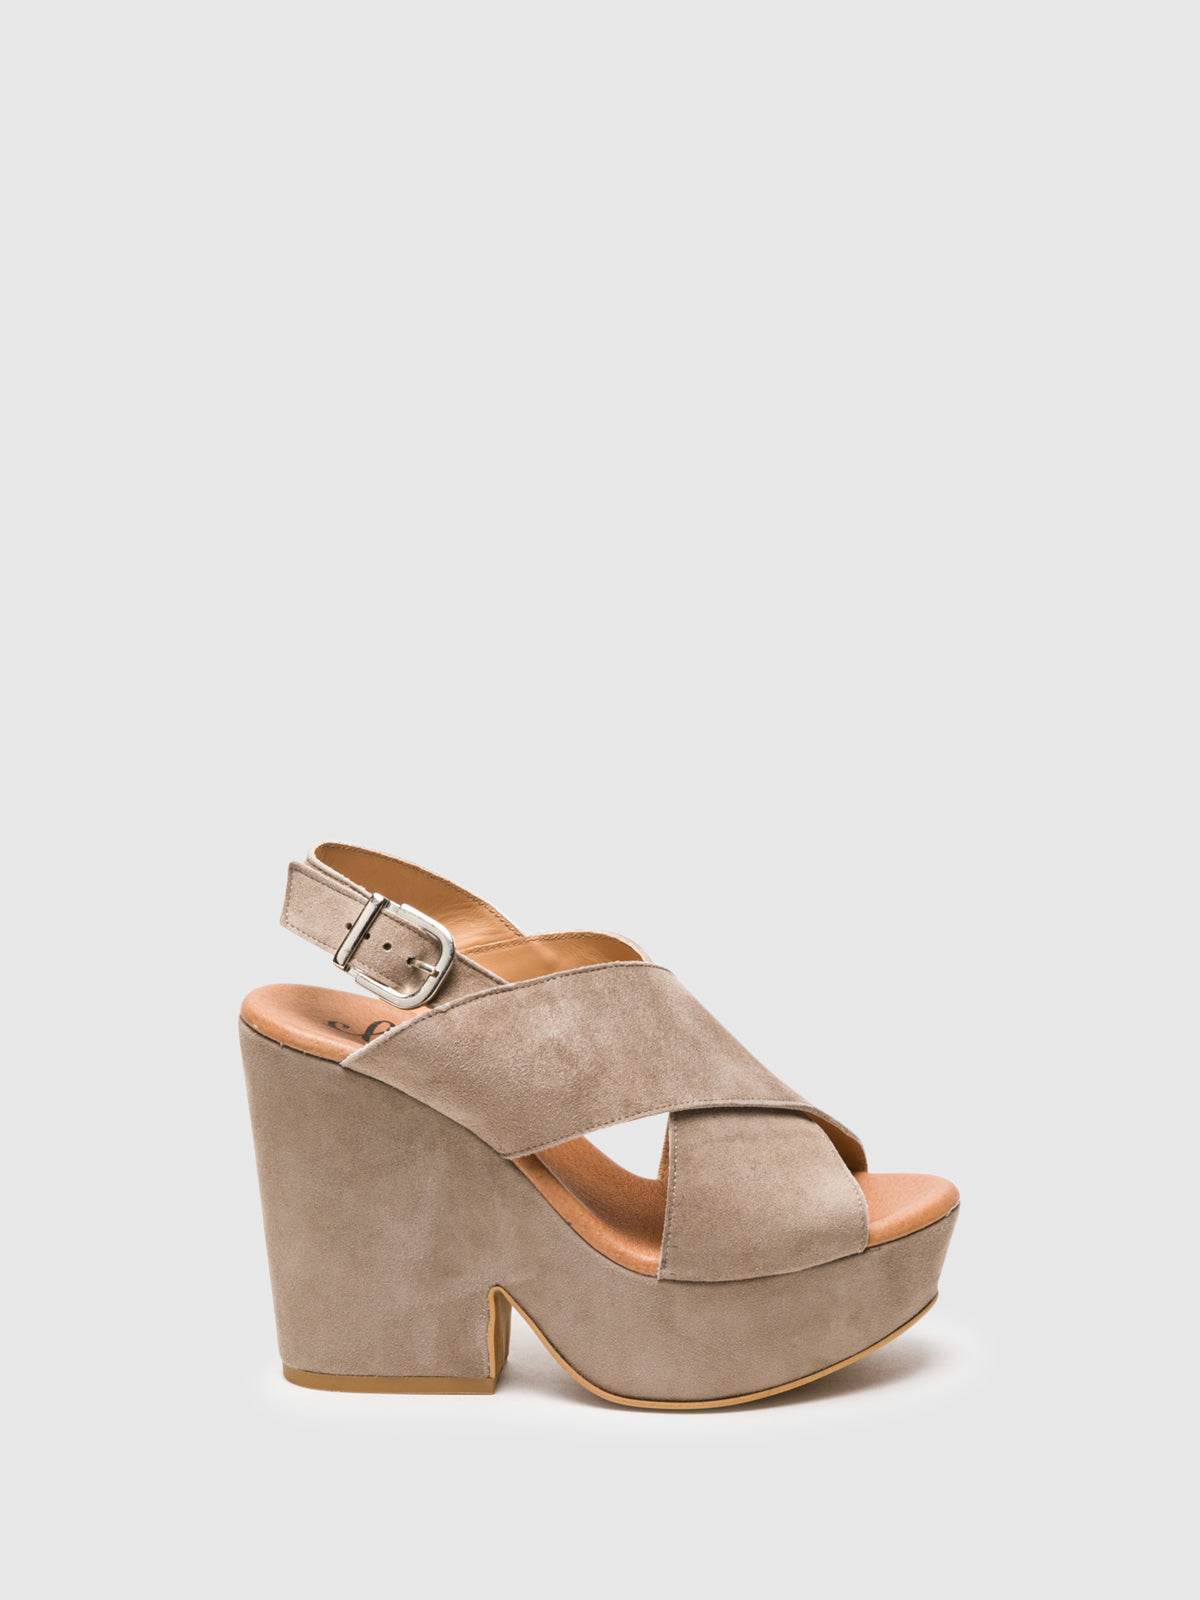 Clay's Gray Wedge Sandals